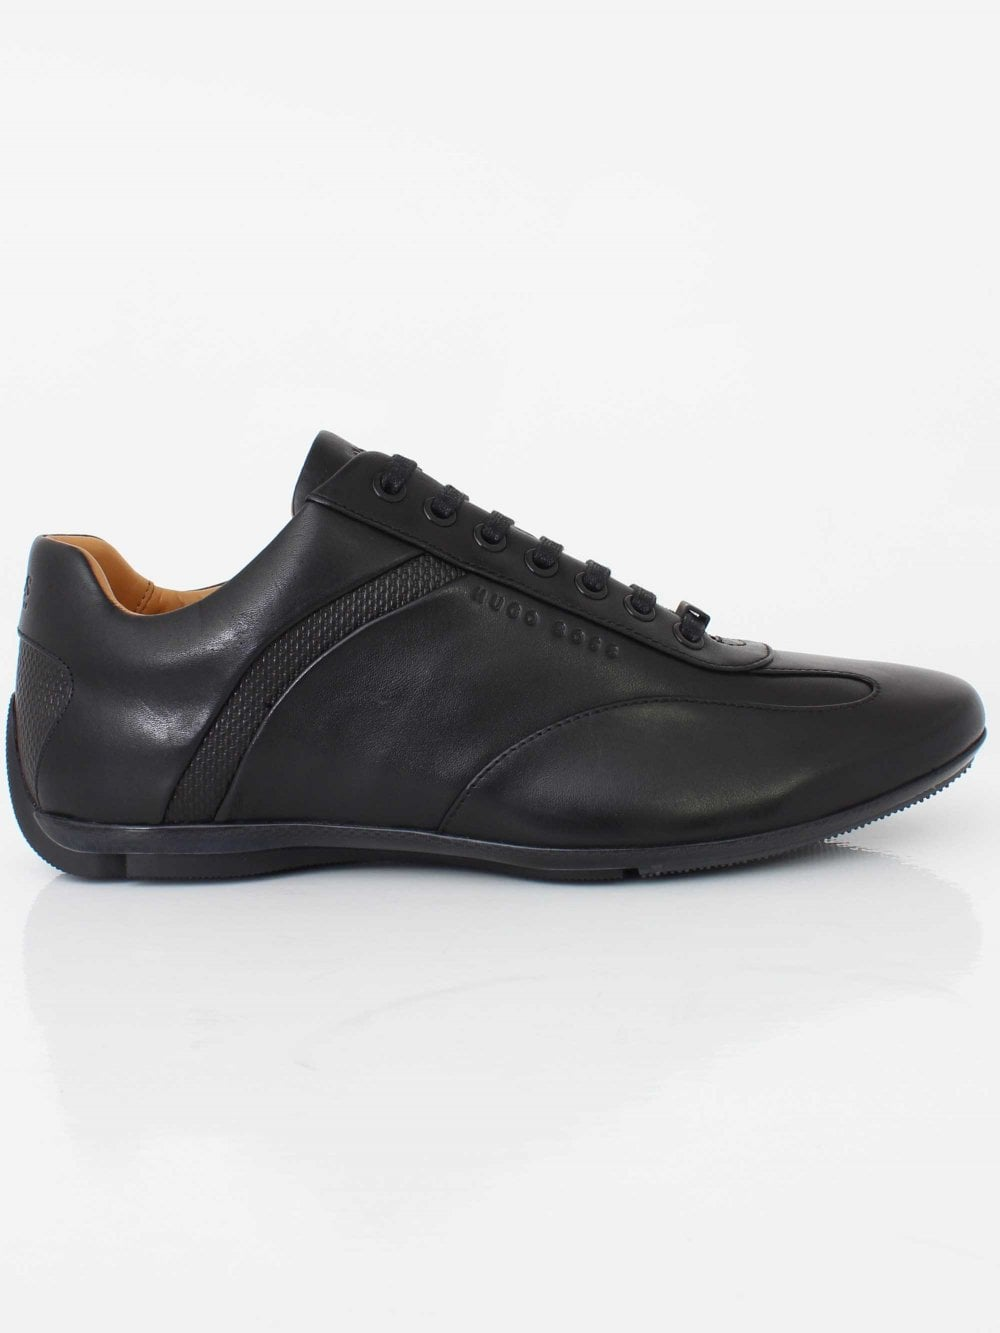 fresh styles the latest super popular HB Racing Low Trainer - Black